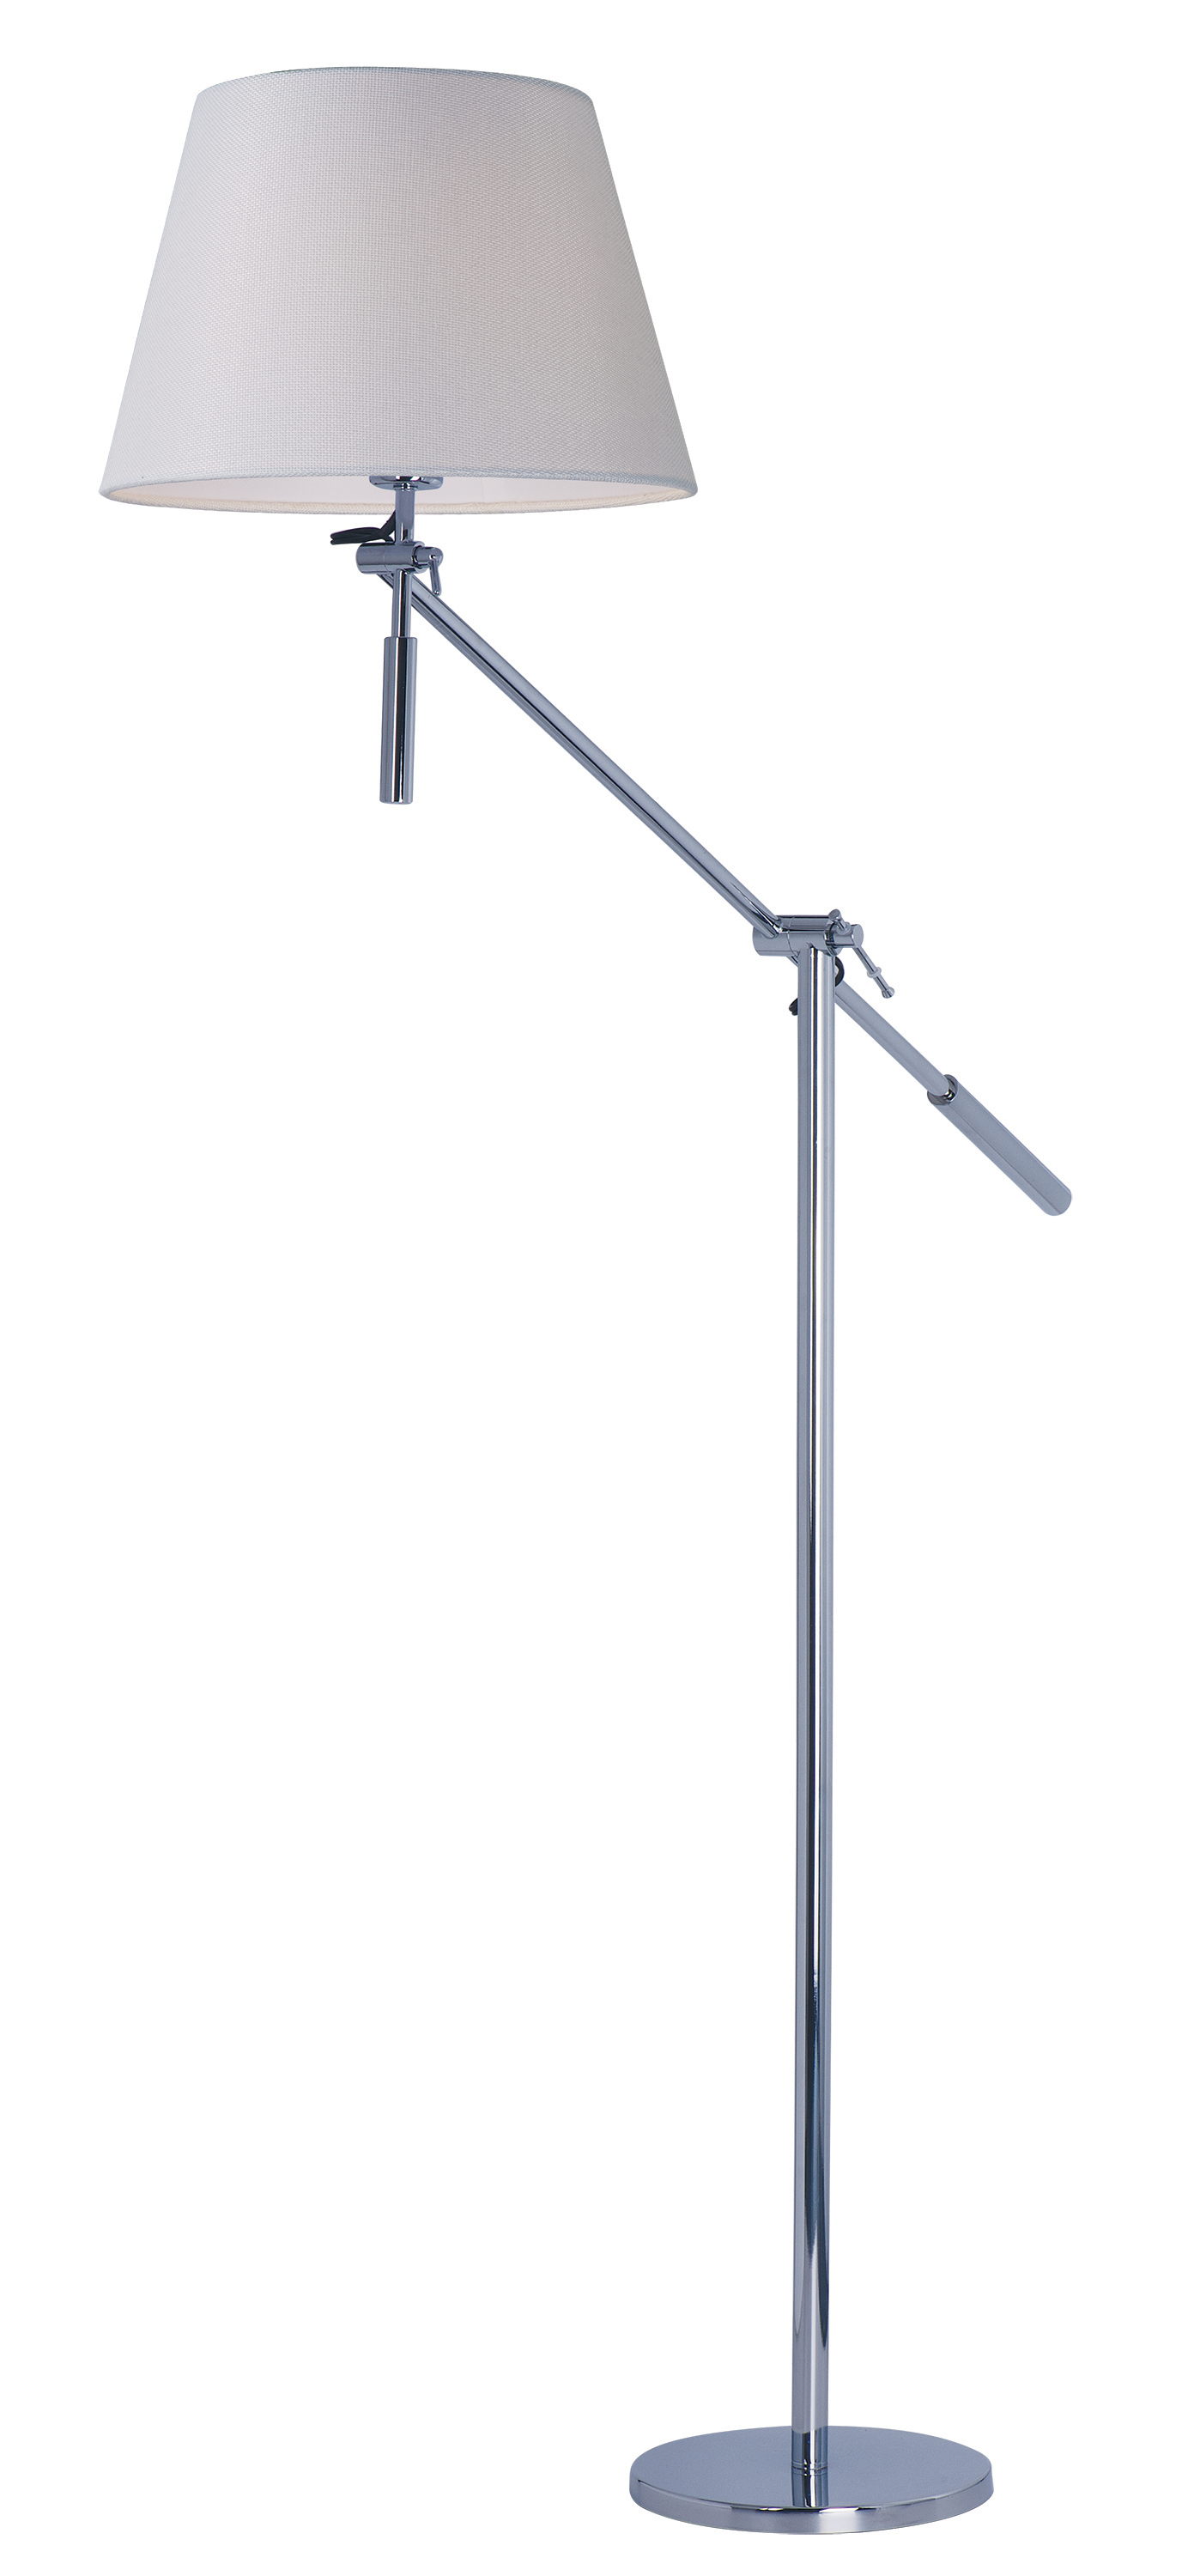 Hotel Floor Lamp | Maxim Lighting